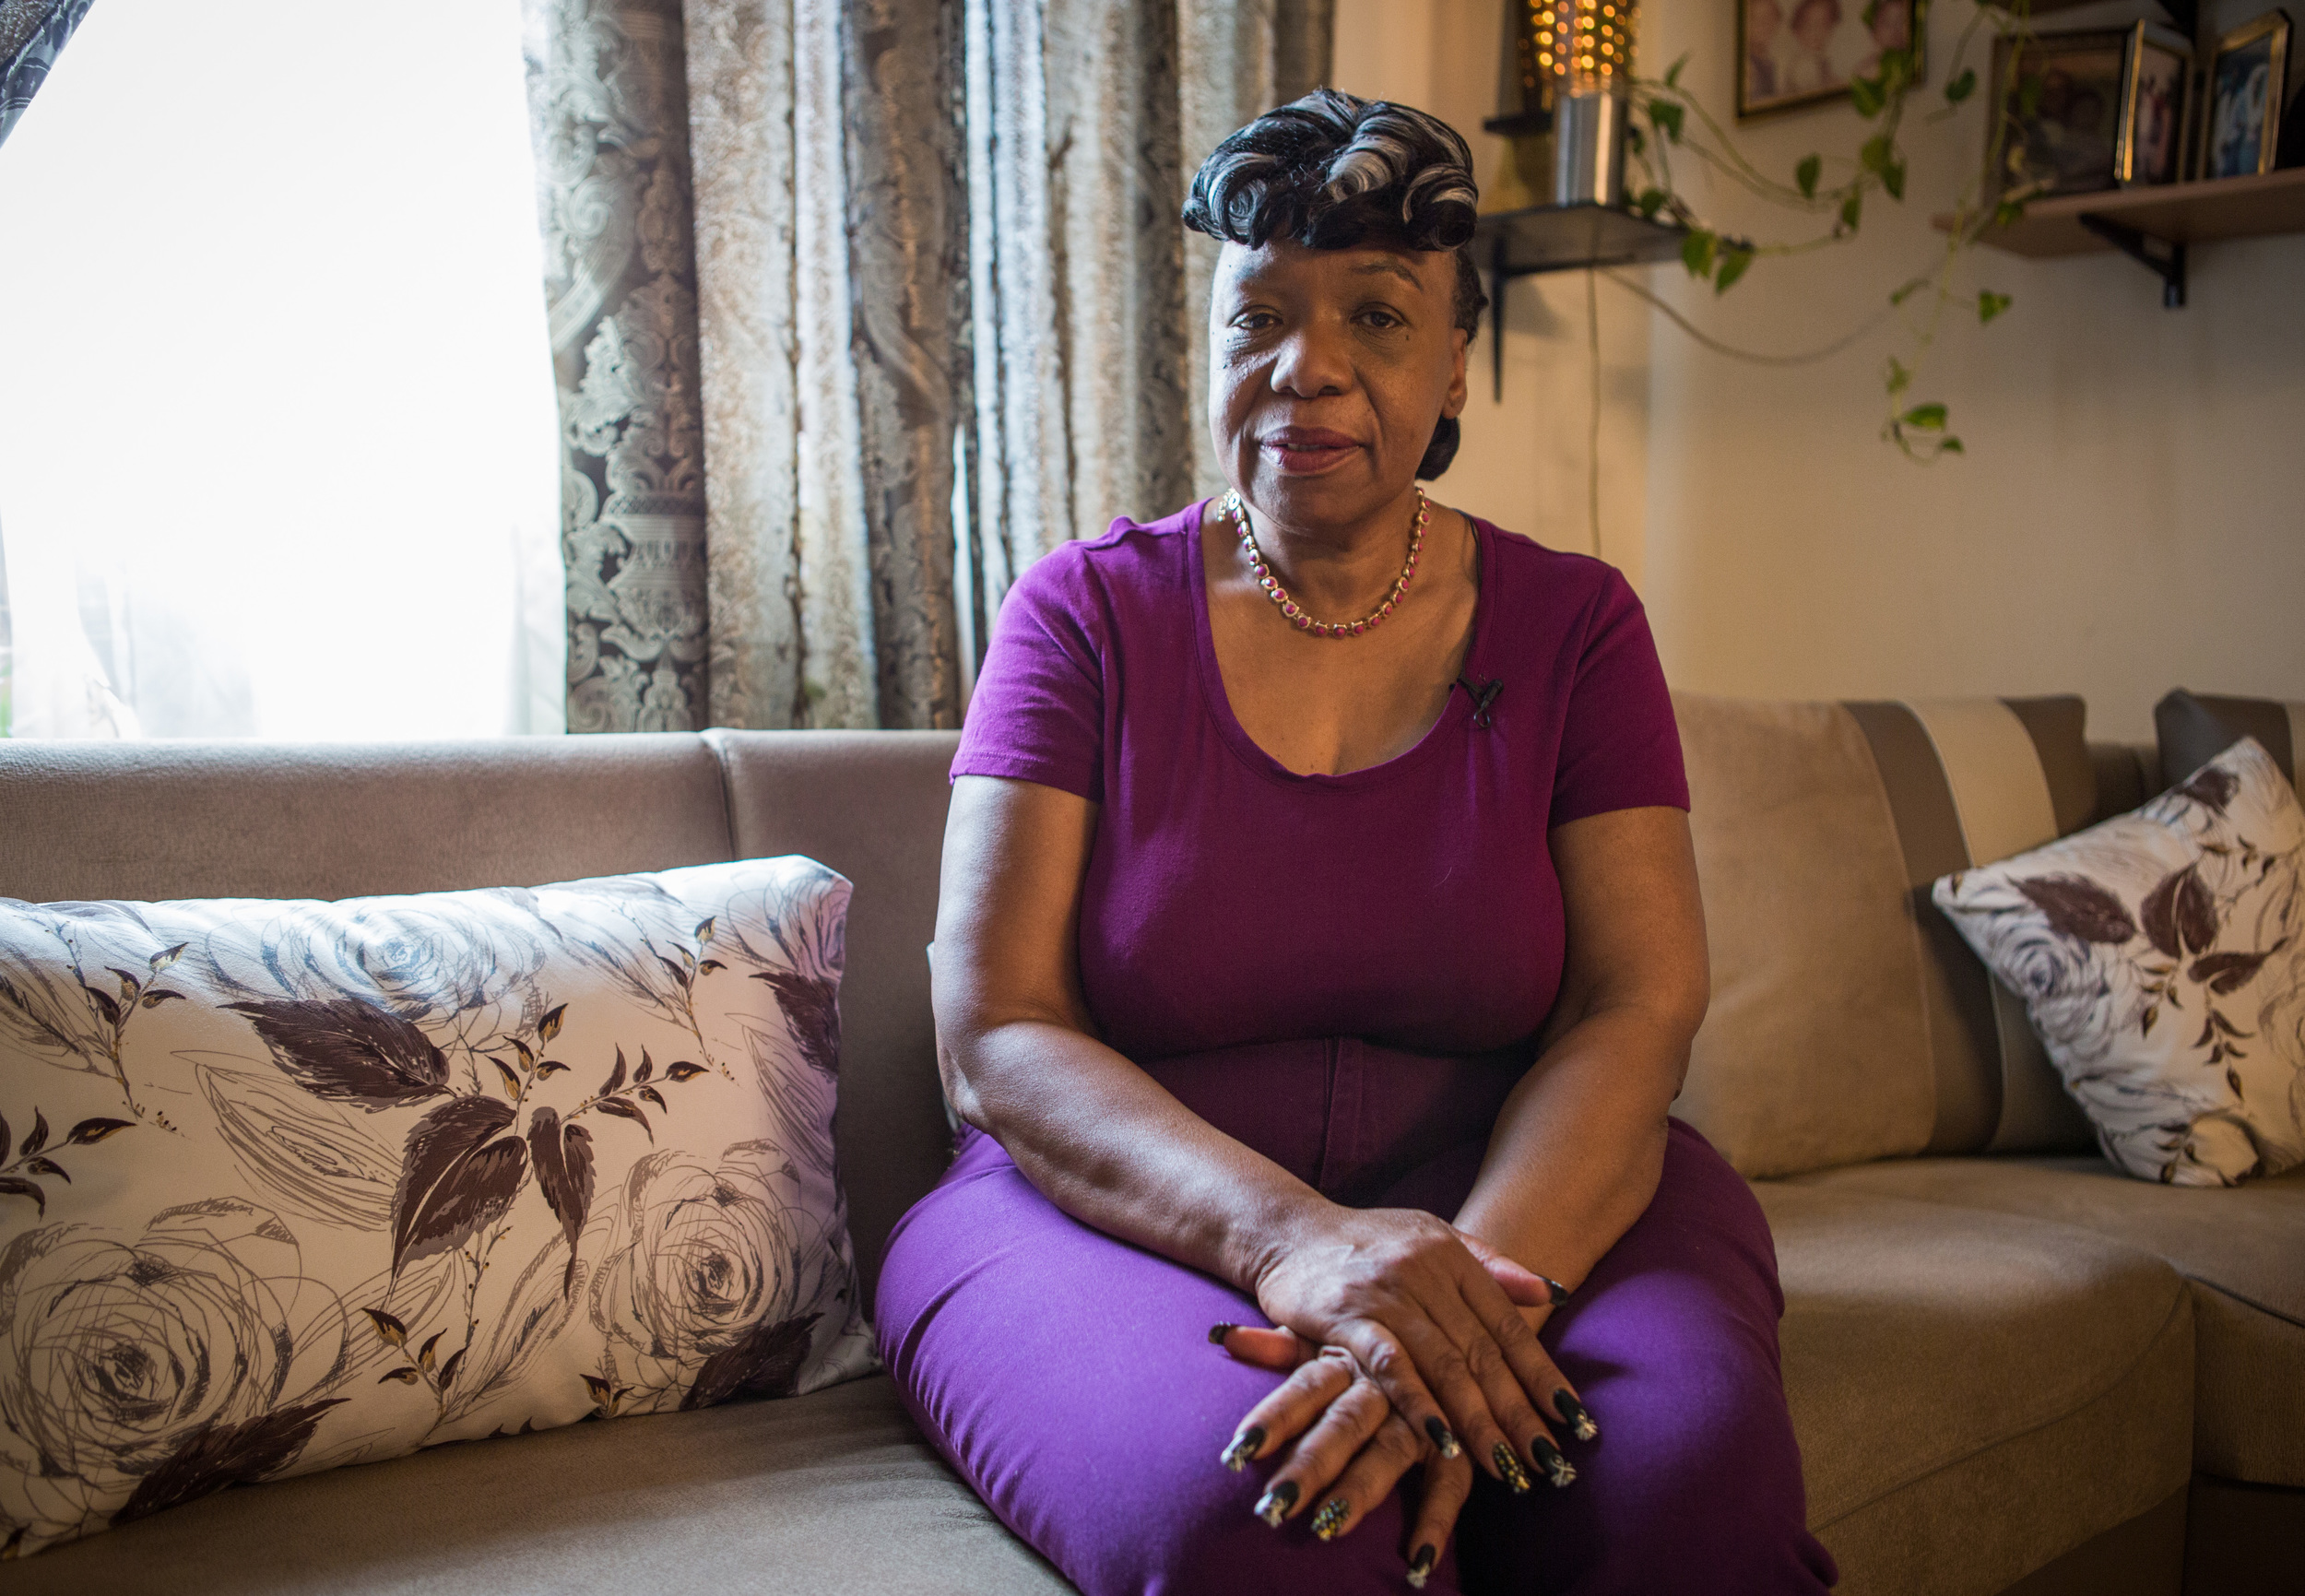 Gwenn Carr, mother to Eric Garner, whose death at the hands of the NYPD drew national attention and ignited public protest against police brutality,at her home in Staten Island, New York, for  Women in the World .